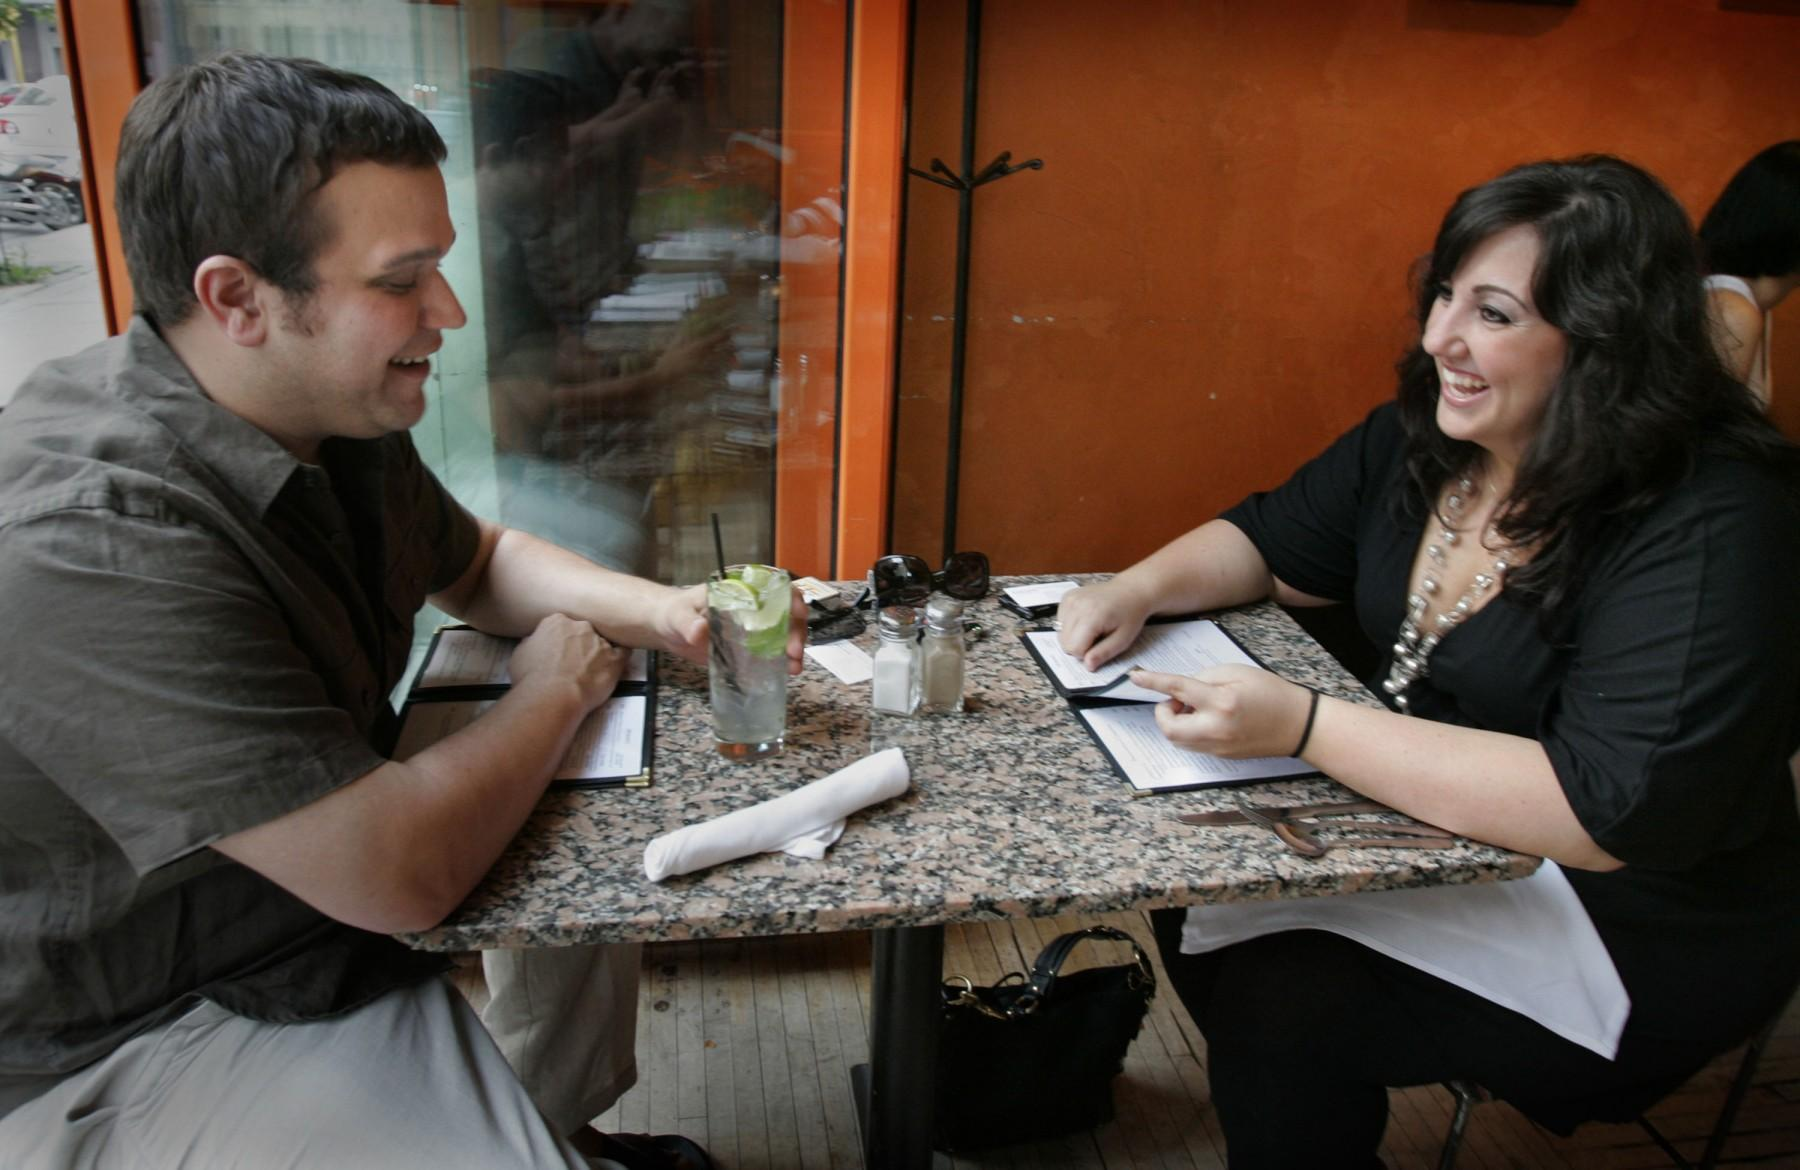 Victor Champeau and Gina Pipito enjoy a nice warm evening at an open air table on a Wednesday night date. They are part of a changing dating scene where singles save weekends for buddies and bar-hopping and shift budding romance to weekday lunches and weeknight encounters. (Gary Porter/Milwaukee Journal Sentinel/MCT)